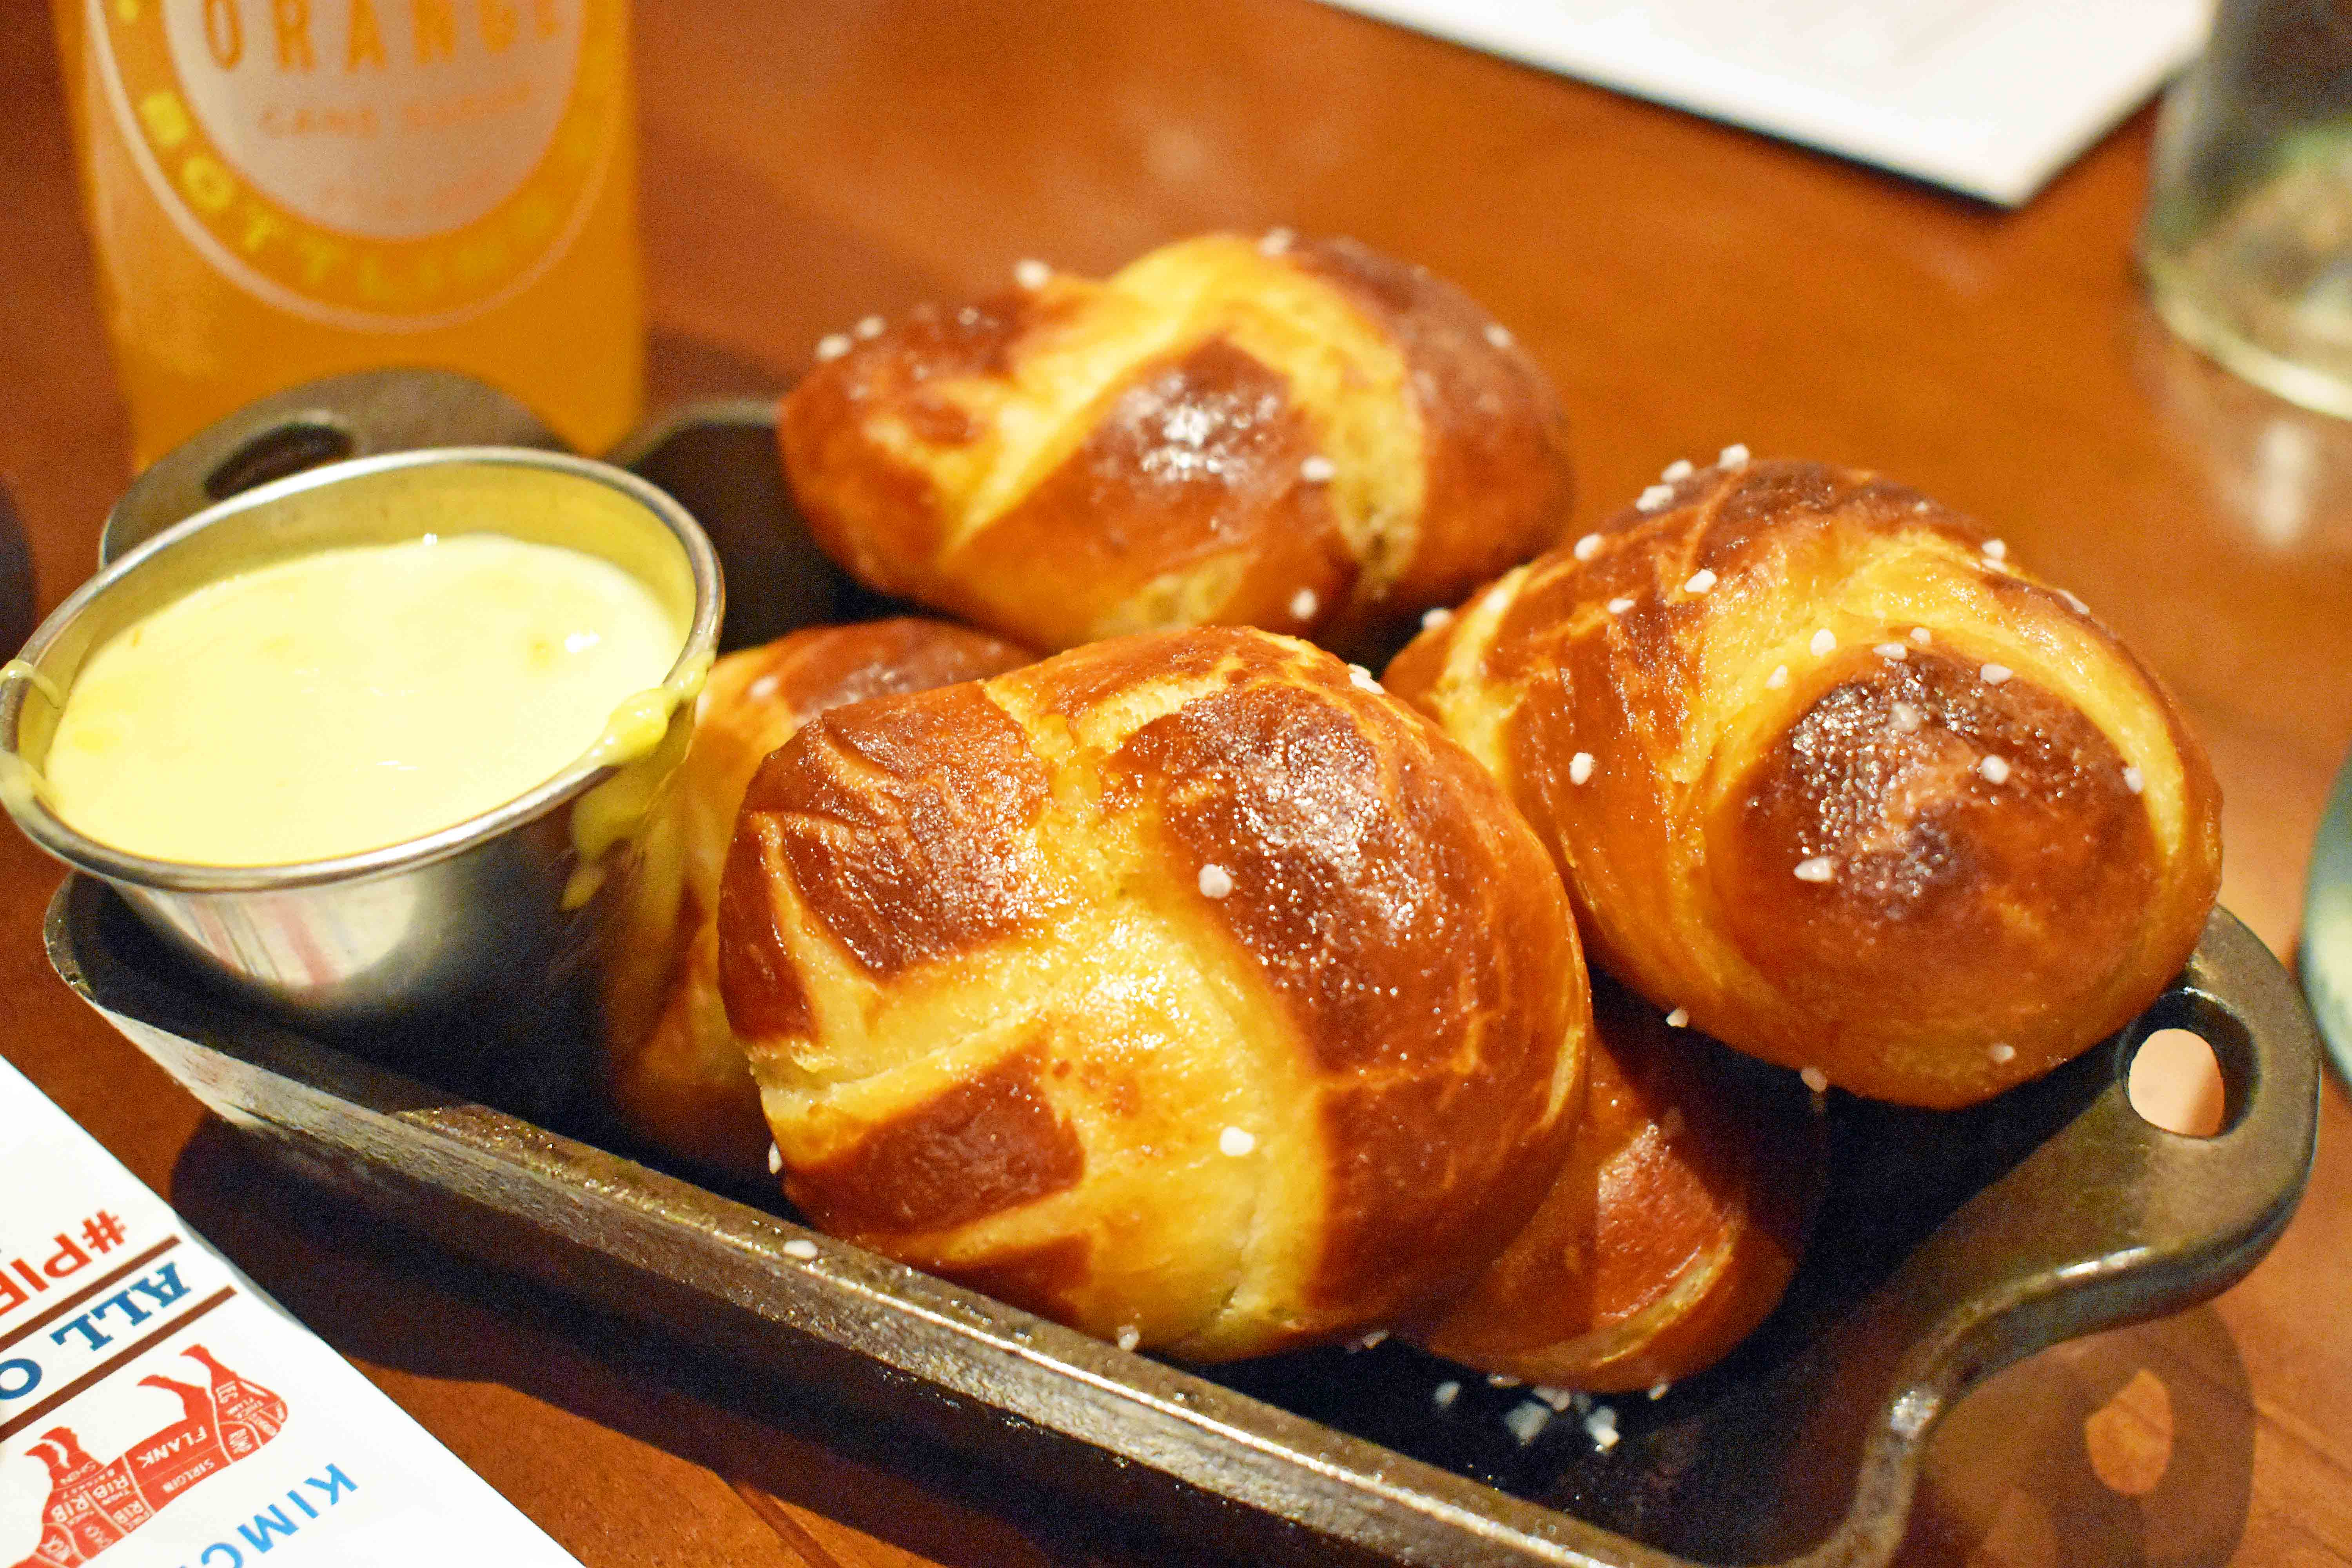 Arizona Four Seasons Christmas and Homemade Hot Chocolate. Pretzel Rolls with Cheese Sauce at Proof Restaurant at Four Seasons Scottsdale Troon North.